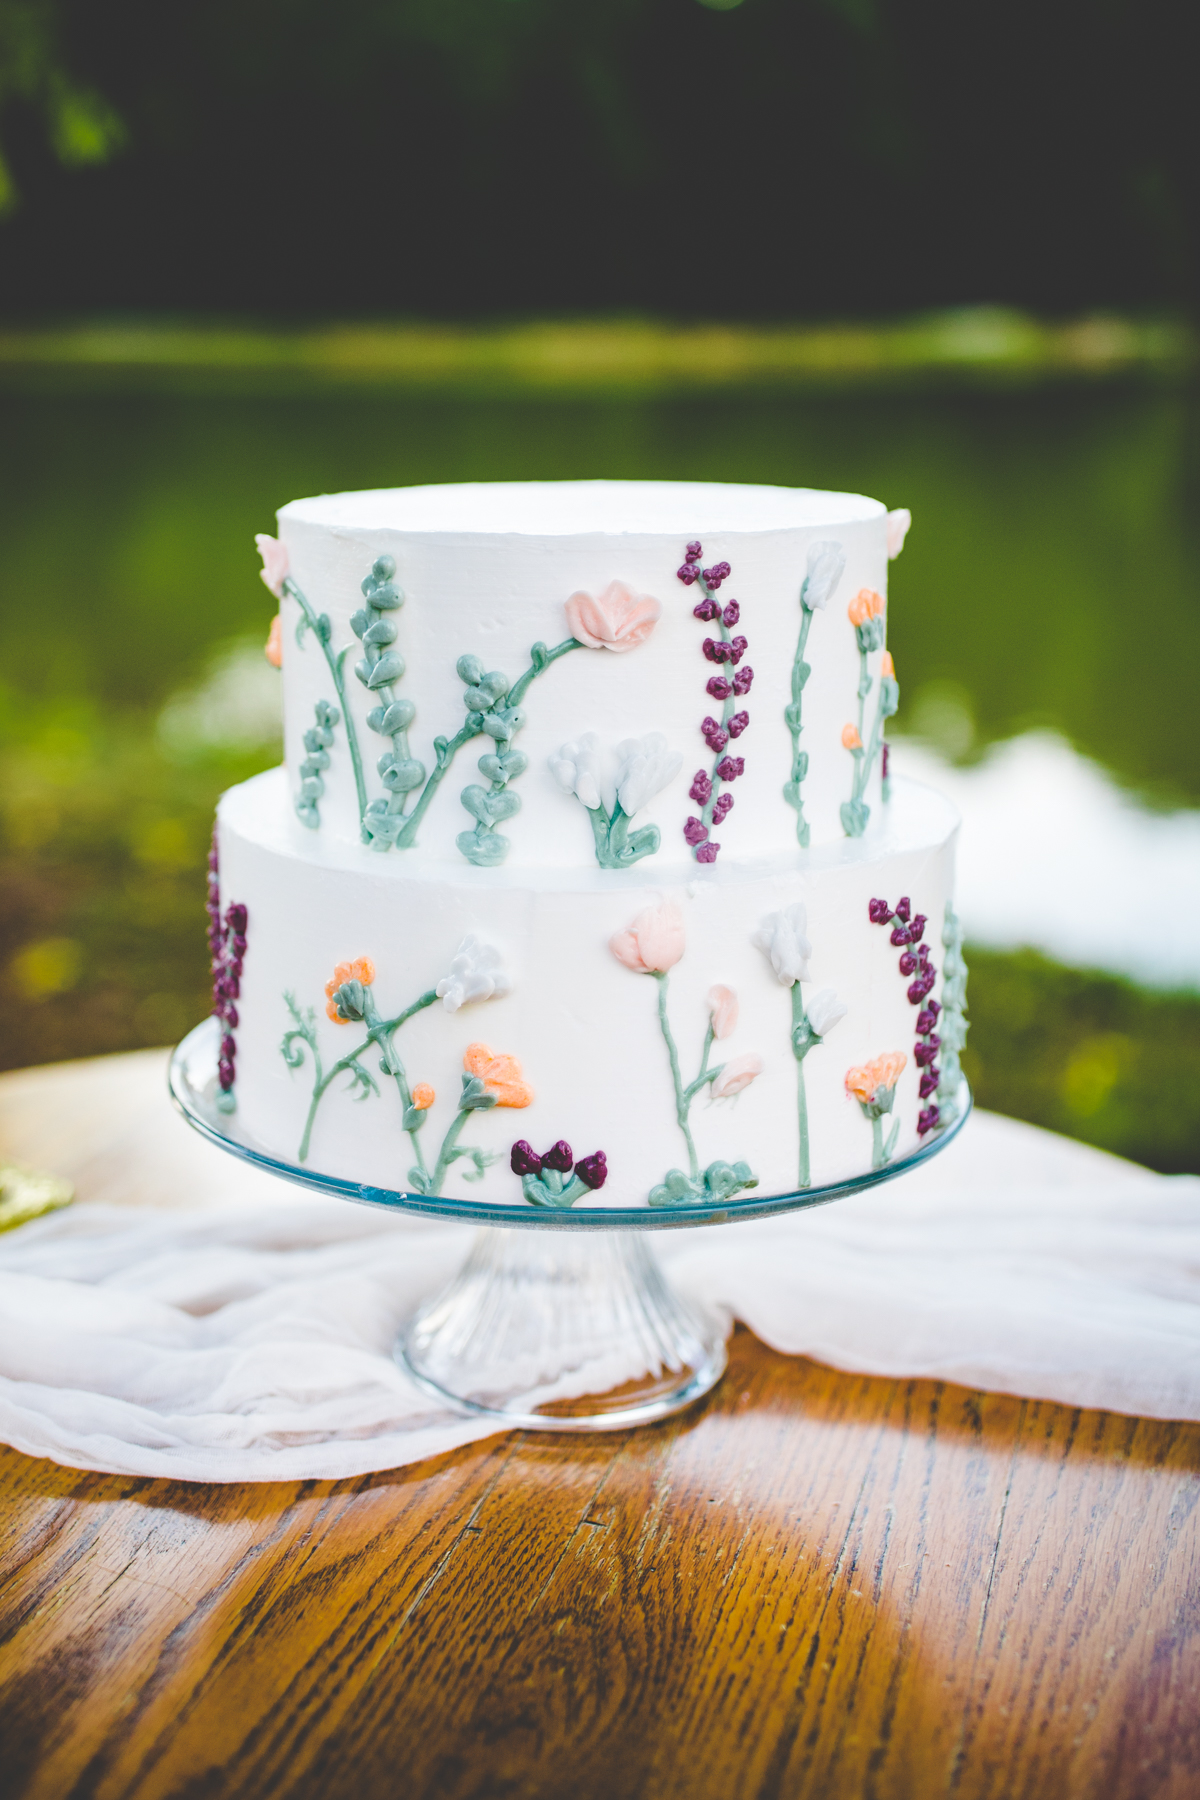 White wedding cake with embroidery flower decoration